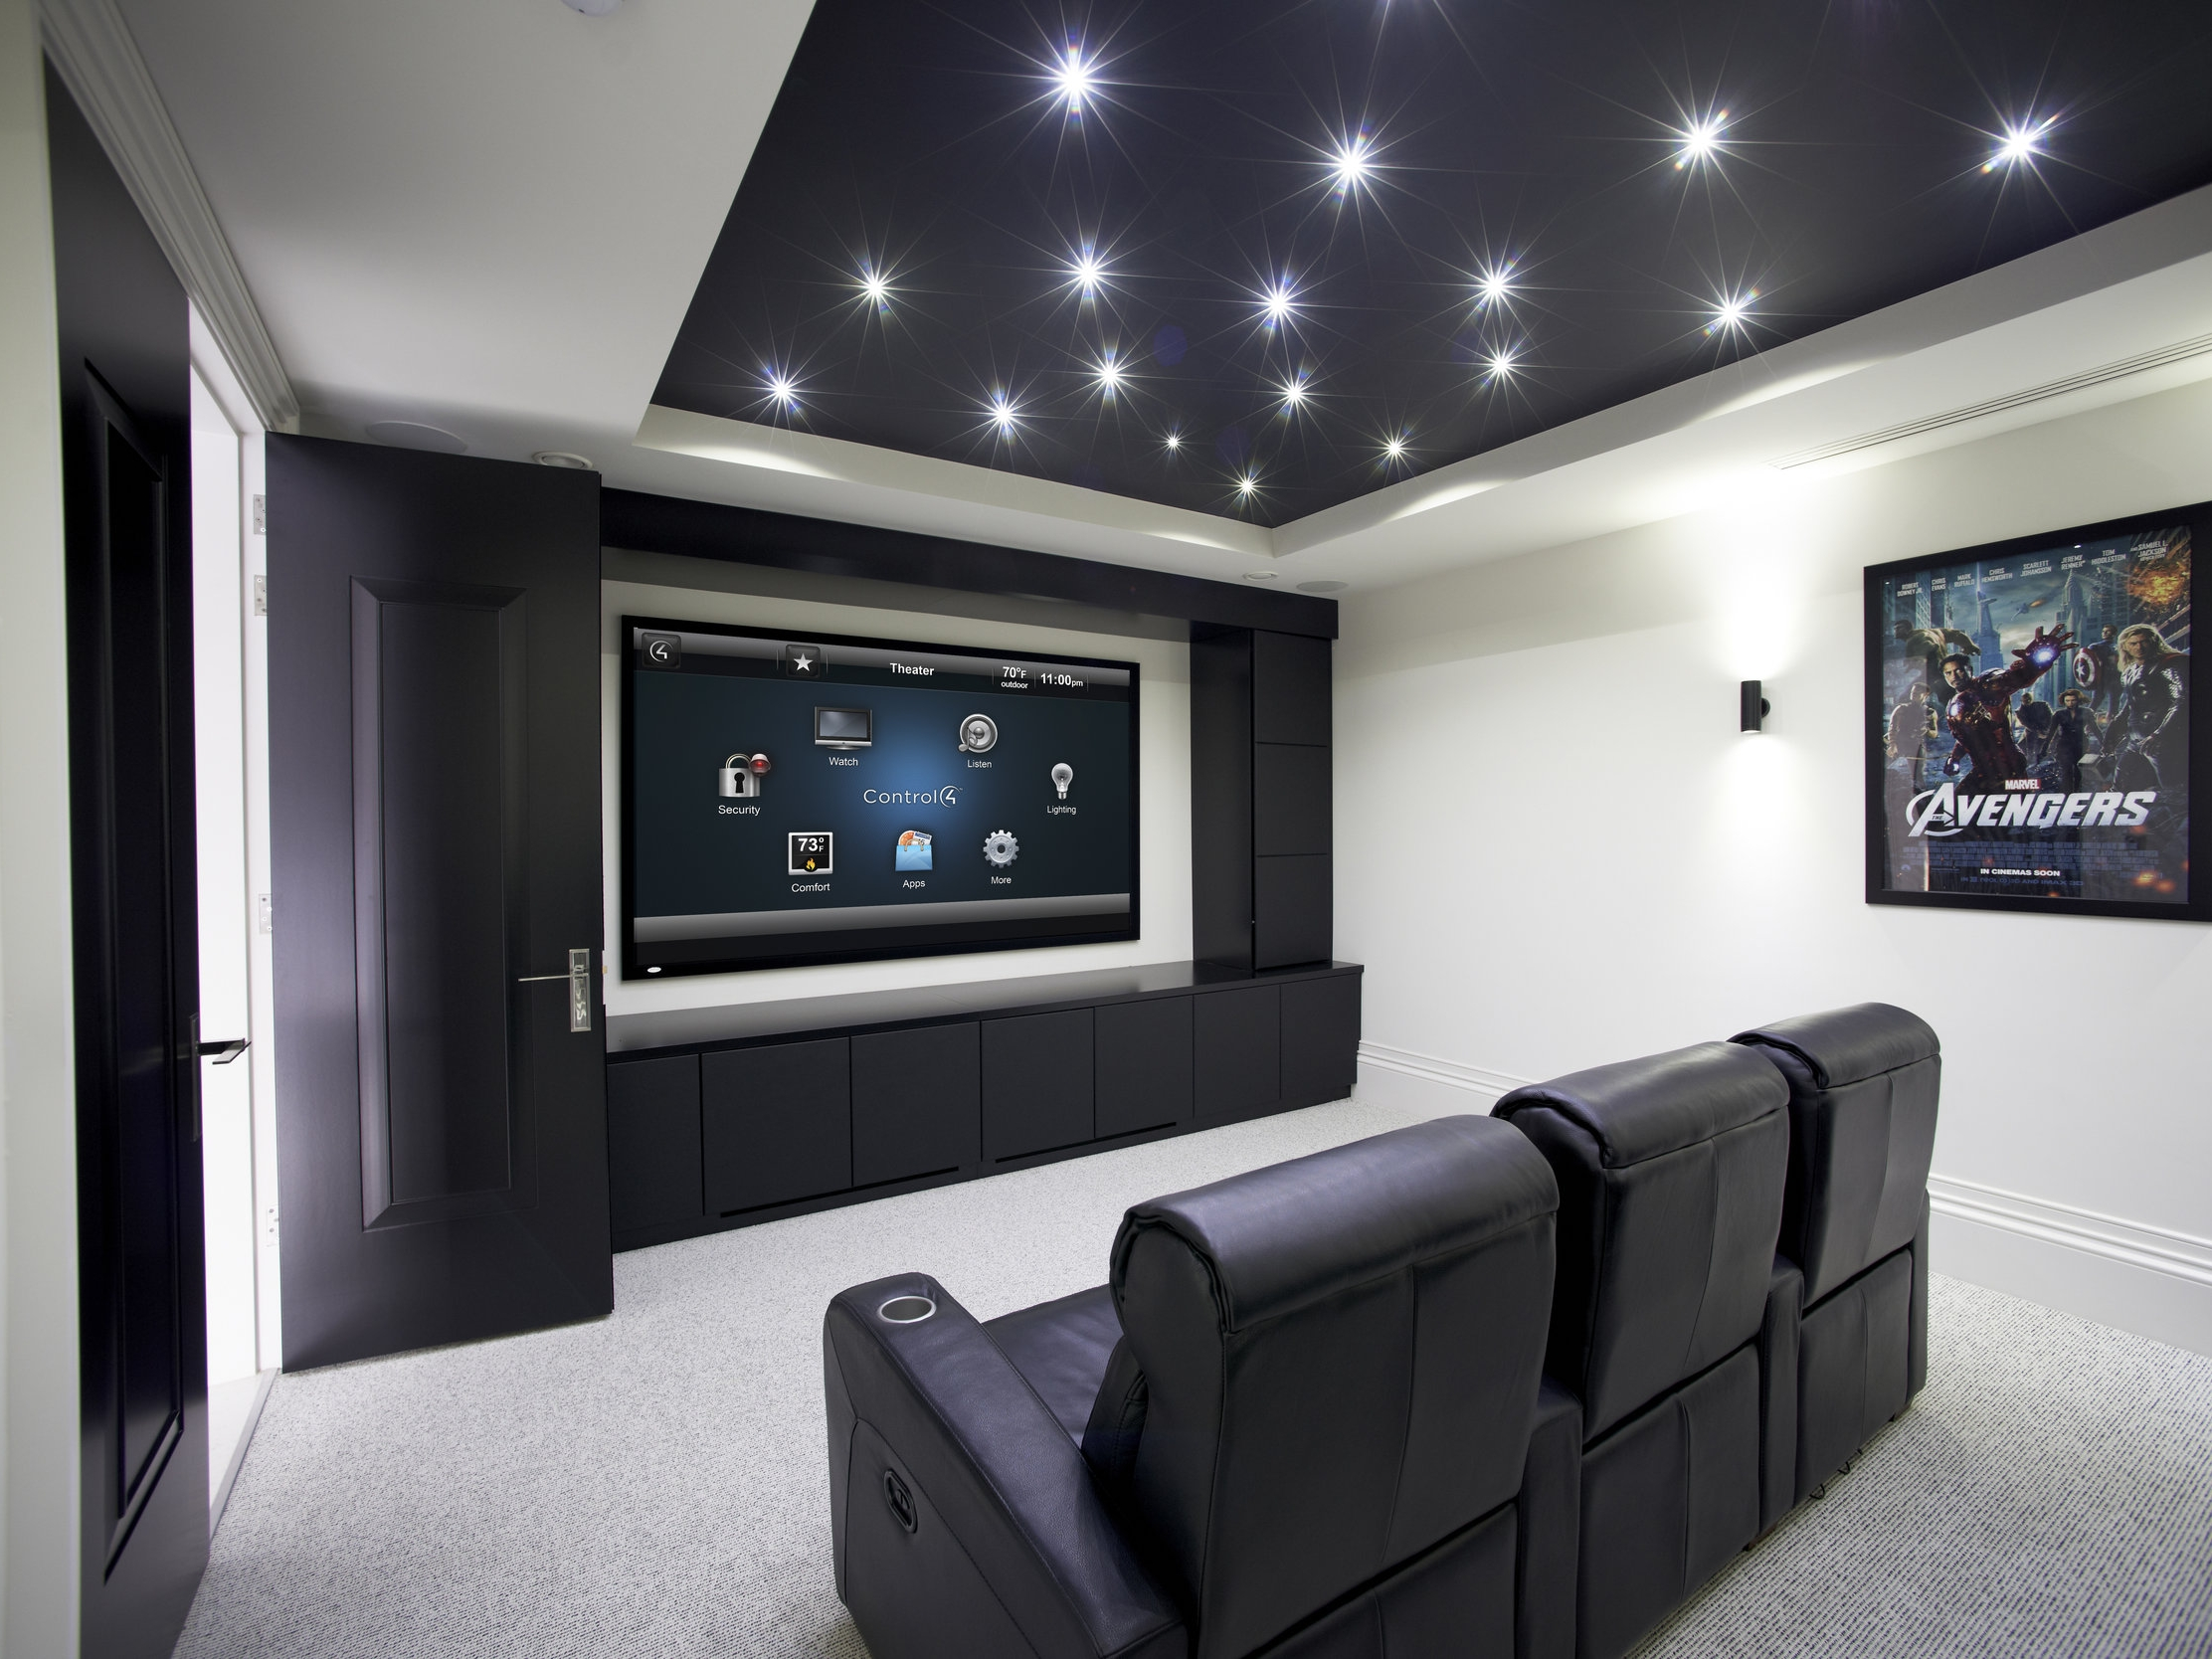 Home Cinema -  The magic of the movie theatre in the comfort of your own home.